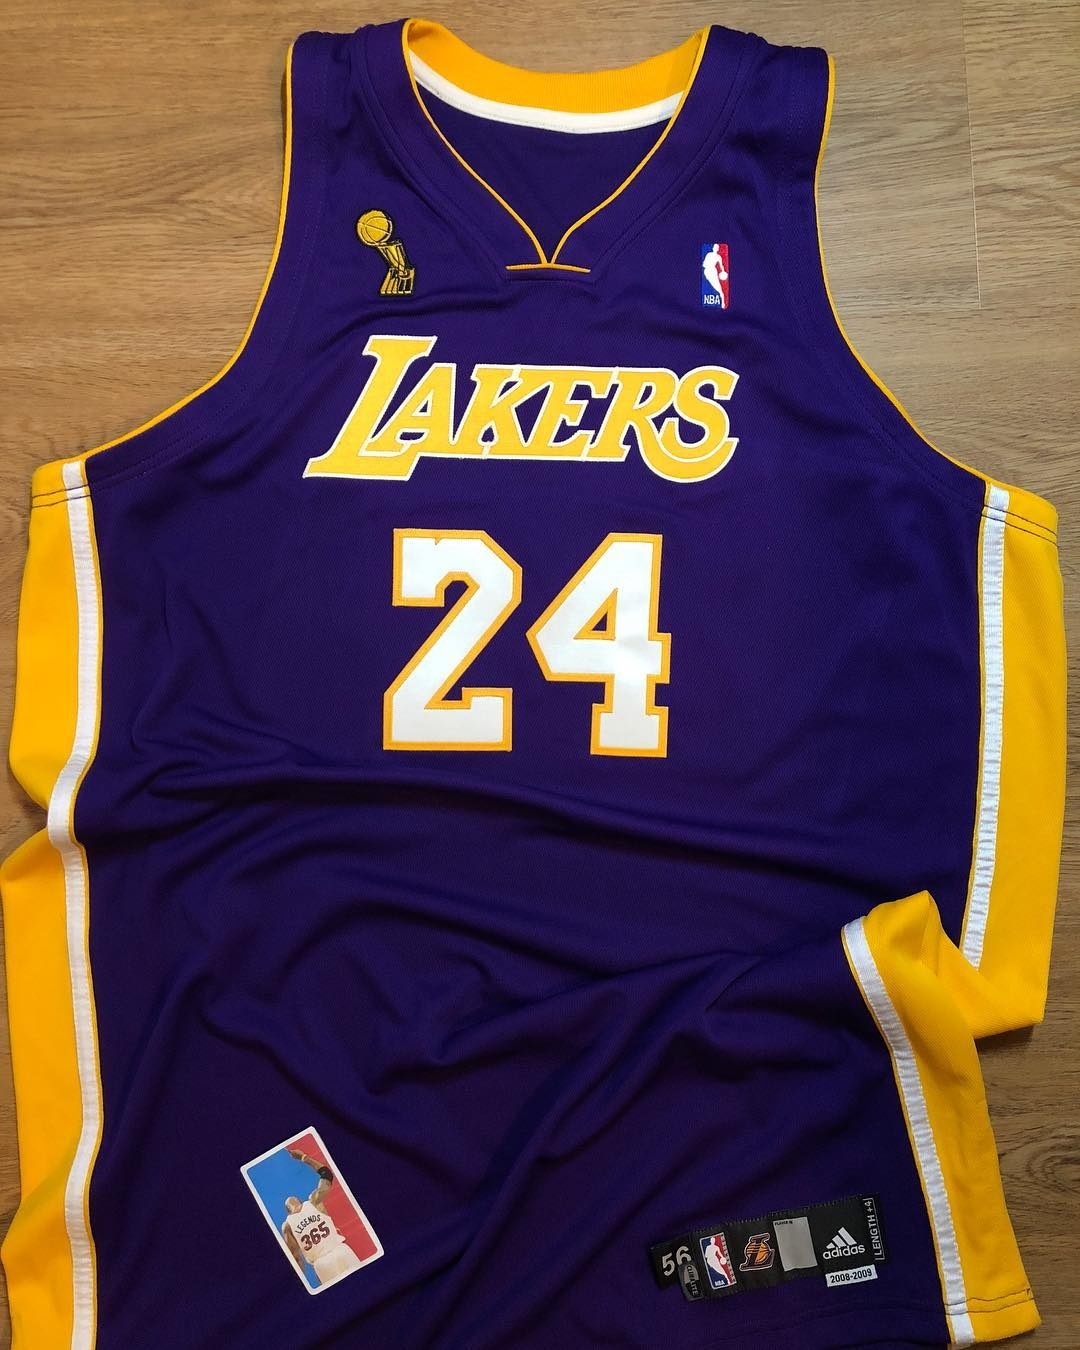 5f63e7f21 Wholesale Authentic Sports Jerseys - Chinabrands.com